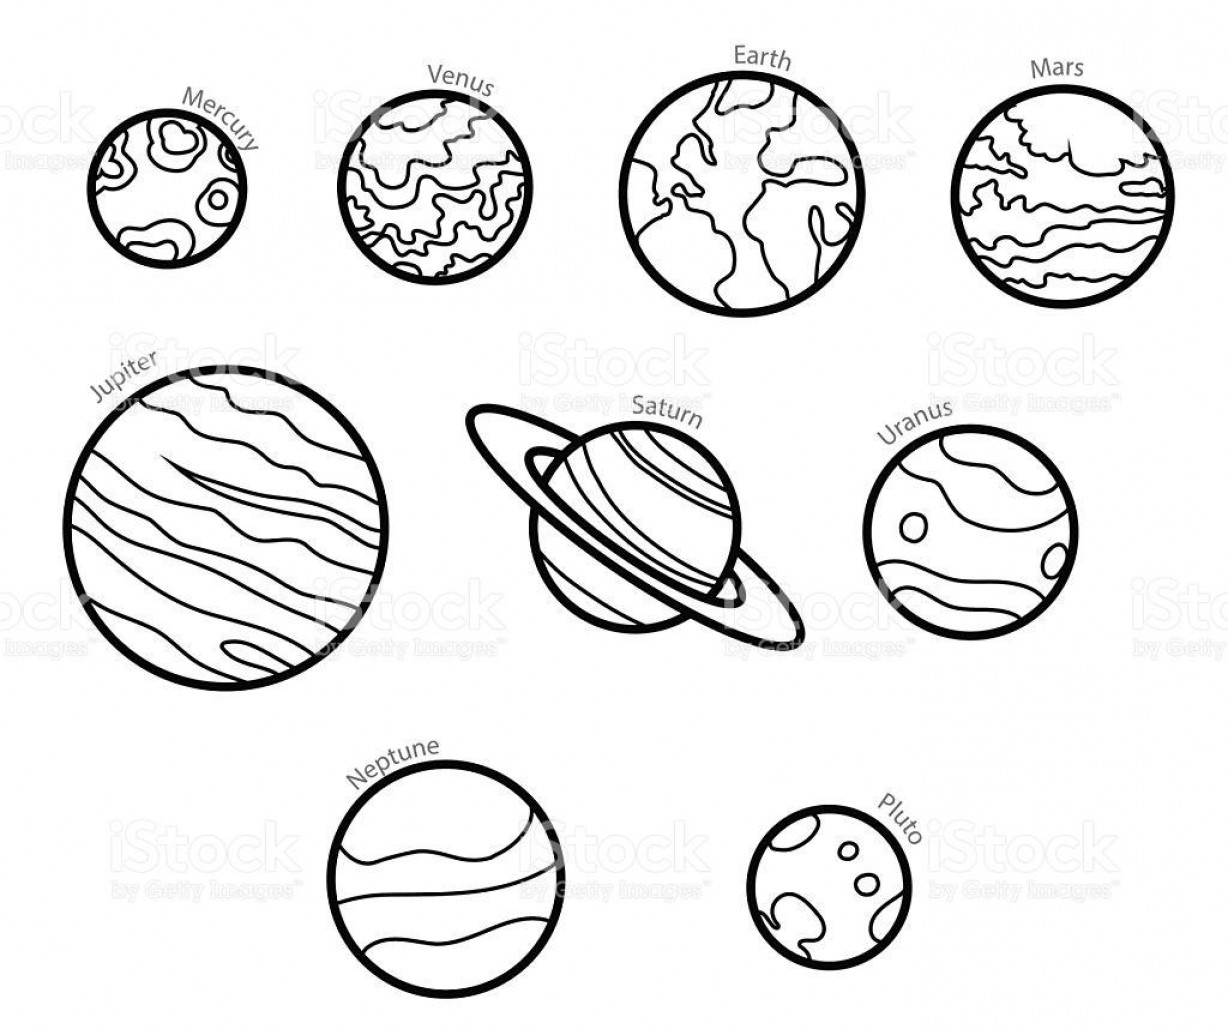 Planets Vector Graphics: Best Free Planet Clip Art Black And White Vector Images